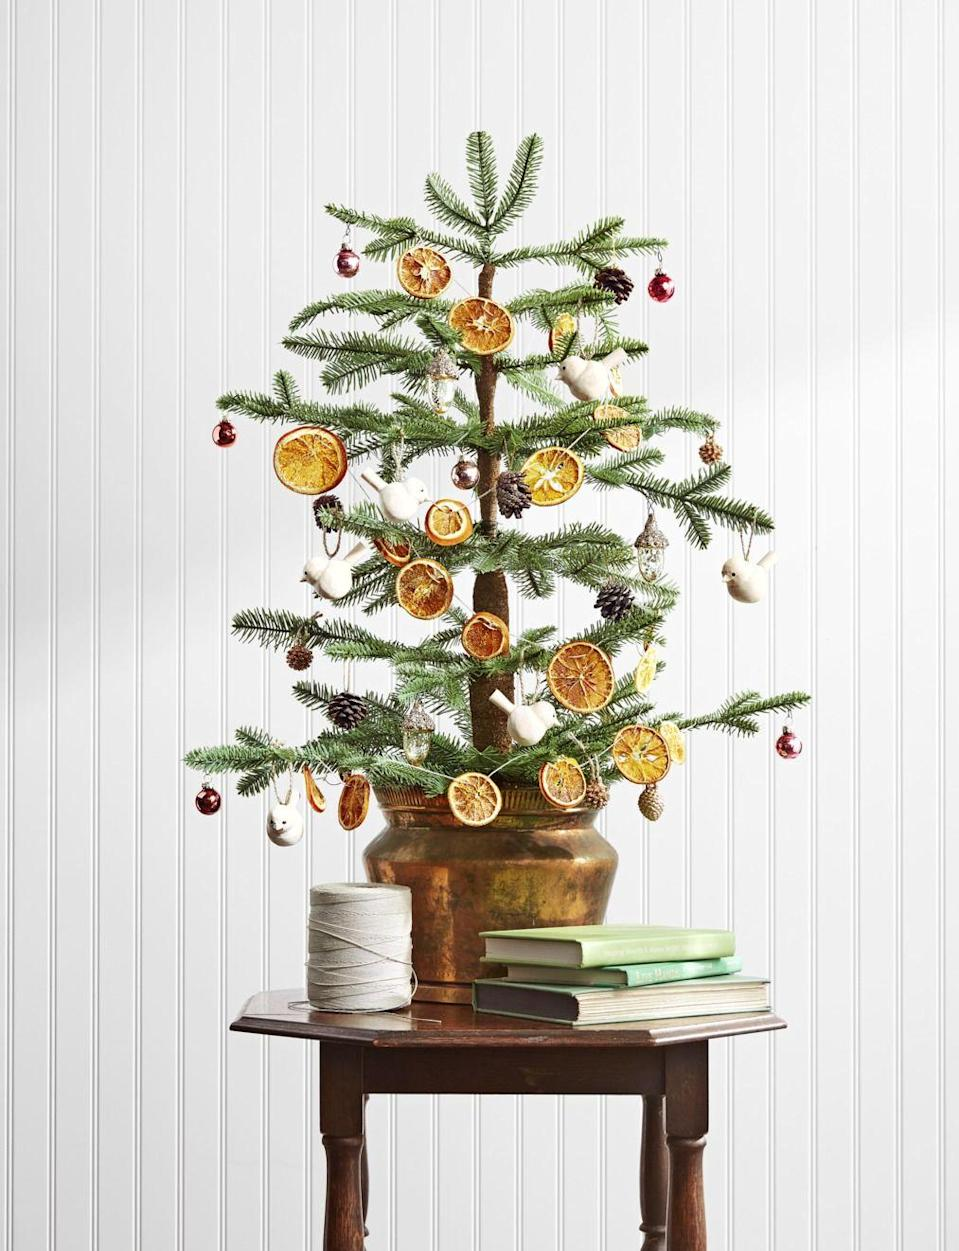 "<p>Citrus ornaments look almost like stained glass when the light shines through them. To string your own strand, all you need are navel and blood oranges, parchment paper, two cookie sheets, jute or natural twine, a skewer or nail, and decorative hooks. </p><p><strong>Make the Ornaments:</strong></p><p>1. Preheat oven to 250°F. </p><p>2. Cut oranges crosswise into 1/4-inch slices (four oranges make a six-foot garland). </p><p>3. Line cookie sheets with parchment paper. Pat orange slices dry with paper towels, and place them on cookie sheets in a single layer. </p><p>4. Bake for approximately 3 hours or until dry. (To ensure the slices dry flat, turn them over at the midway mark.) Remove from oven. </p><p>5. Using a skewer or nail, poke two holes into the top of each orange slice. </p><p>6. Thread twine through each hole, evenly spacing the oranges on the garland. Tie off each end with a loop, and hang from hooks.</p><p><a class=""link rapid-noclick-resp"" href=""https://www.amazon.com/Jansal-Valley-Natural-Sliced-Oranges/dp/B00MBFRVFO/ref=sr_1_9?tag=syn-yahoo-20&ascsubtag=%5Bartid%7C10050.g.1070%5Bsrc%7Cyahoo-us"" rel=""nofollow noopener"" target=""_blank"" data-ylk=""slk:SHOP DRIED ORANGE SLICES"">SHOP DRIED ORANGE SLICES</a></p>"